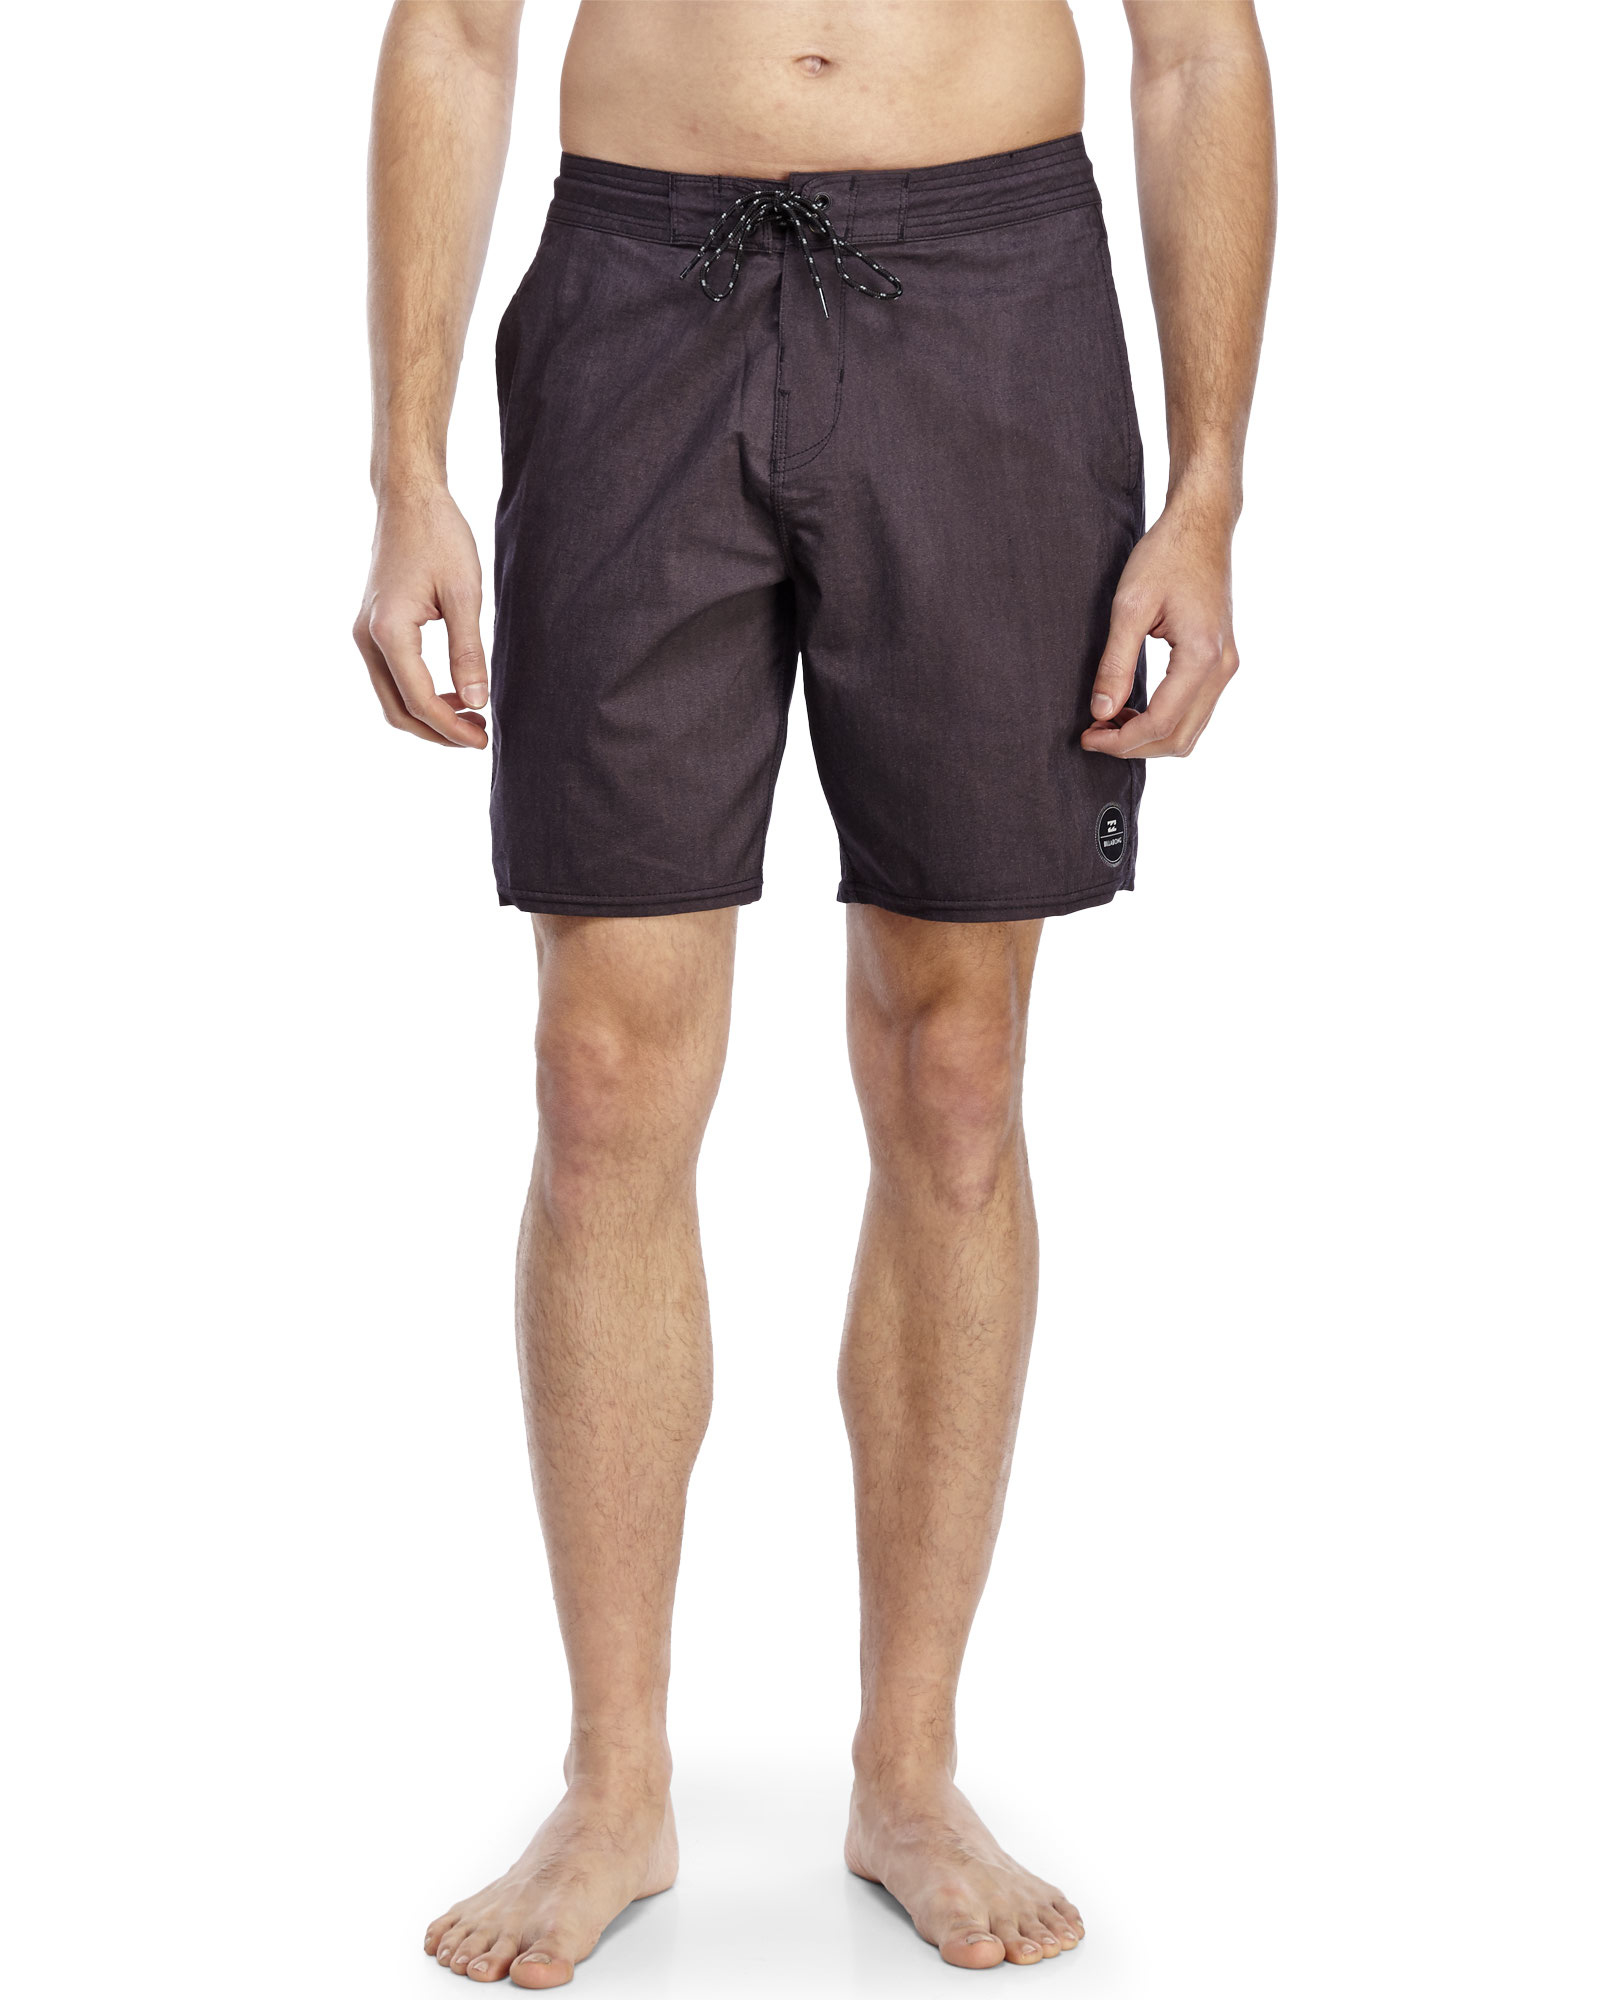 Lyst - Billabong All Day Lo Tides Board Shorts in Black for Men 424c60795